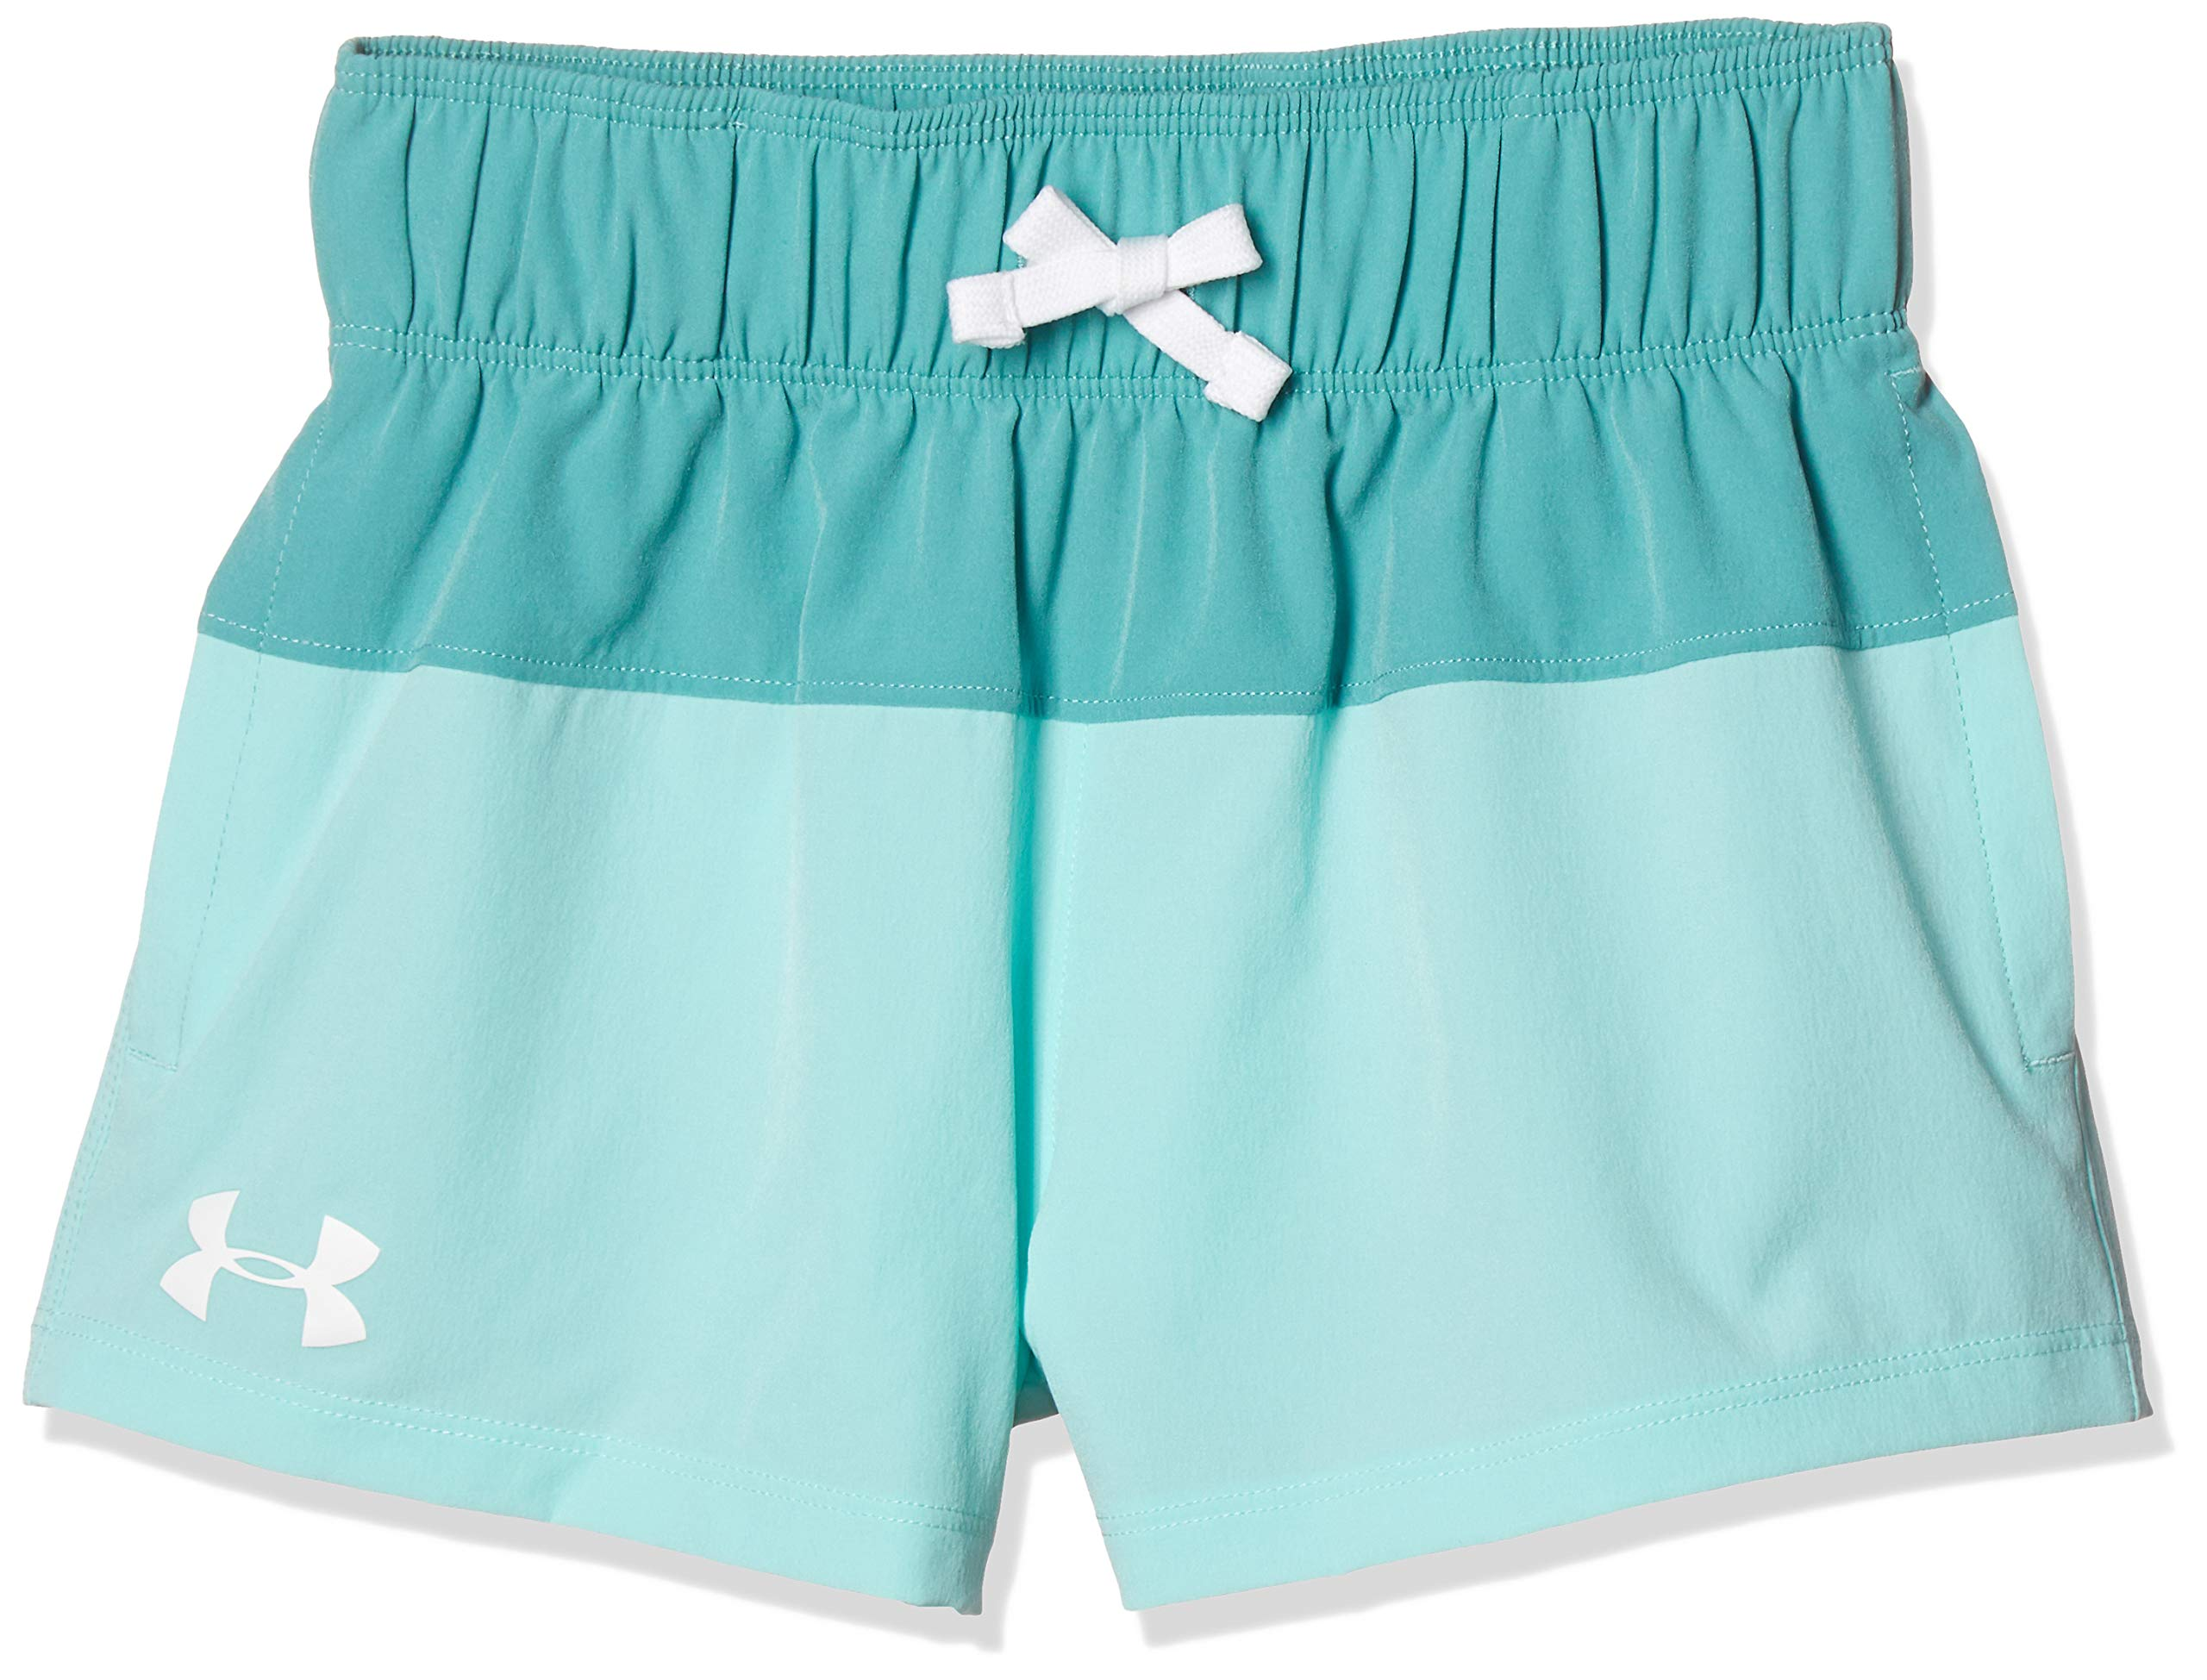 Under Armour Girls' Splash Board Shorty, Azure Teal//White, Youth X-Large by Under Armour